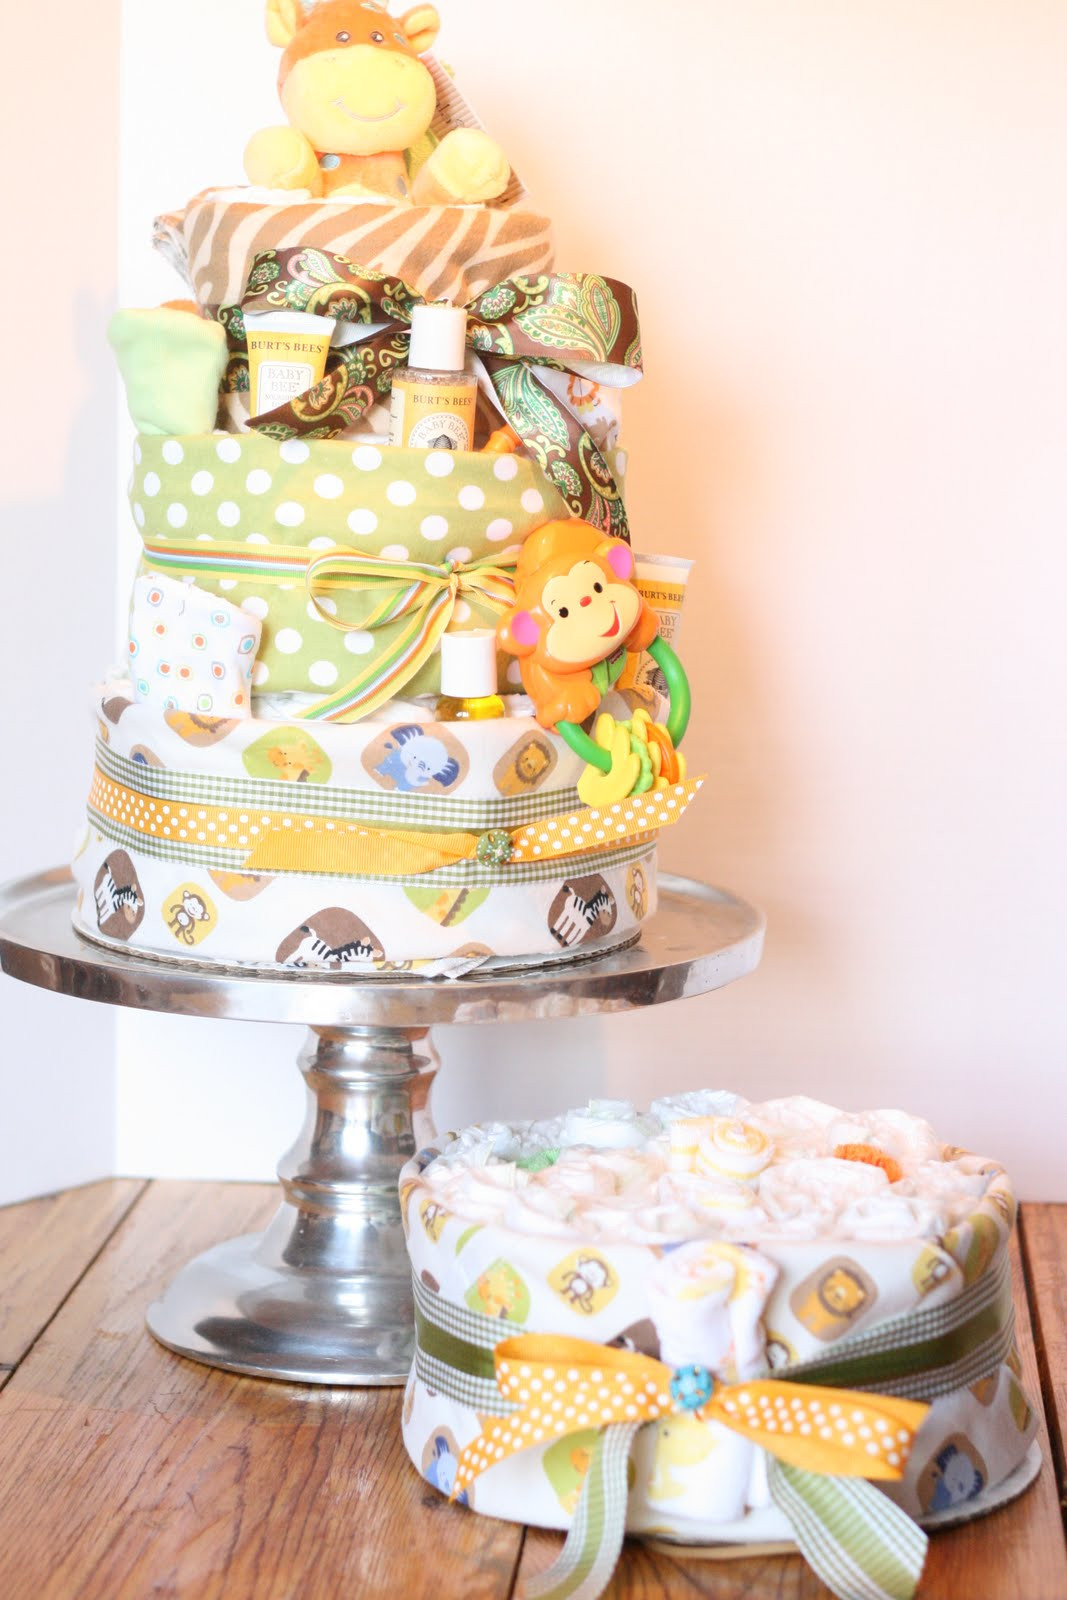 Diy Baby Boy Shower Gift Ideas  25 DIY Baby Shower Gifts for the Little Boy on the Wa